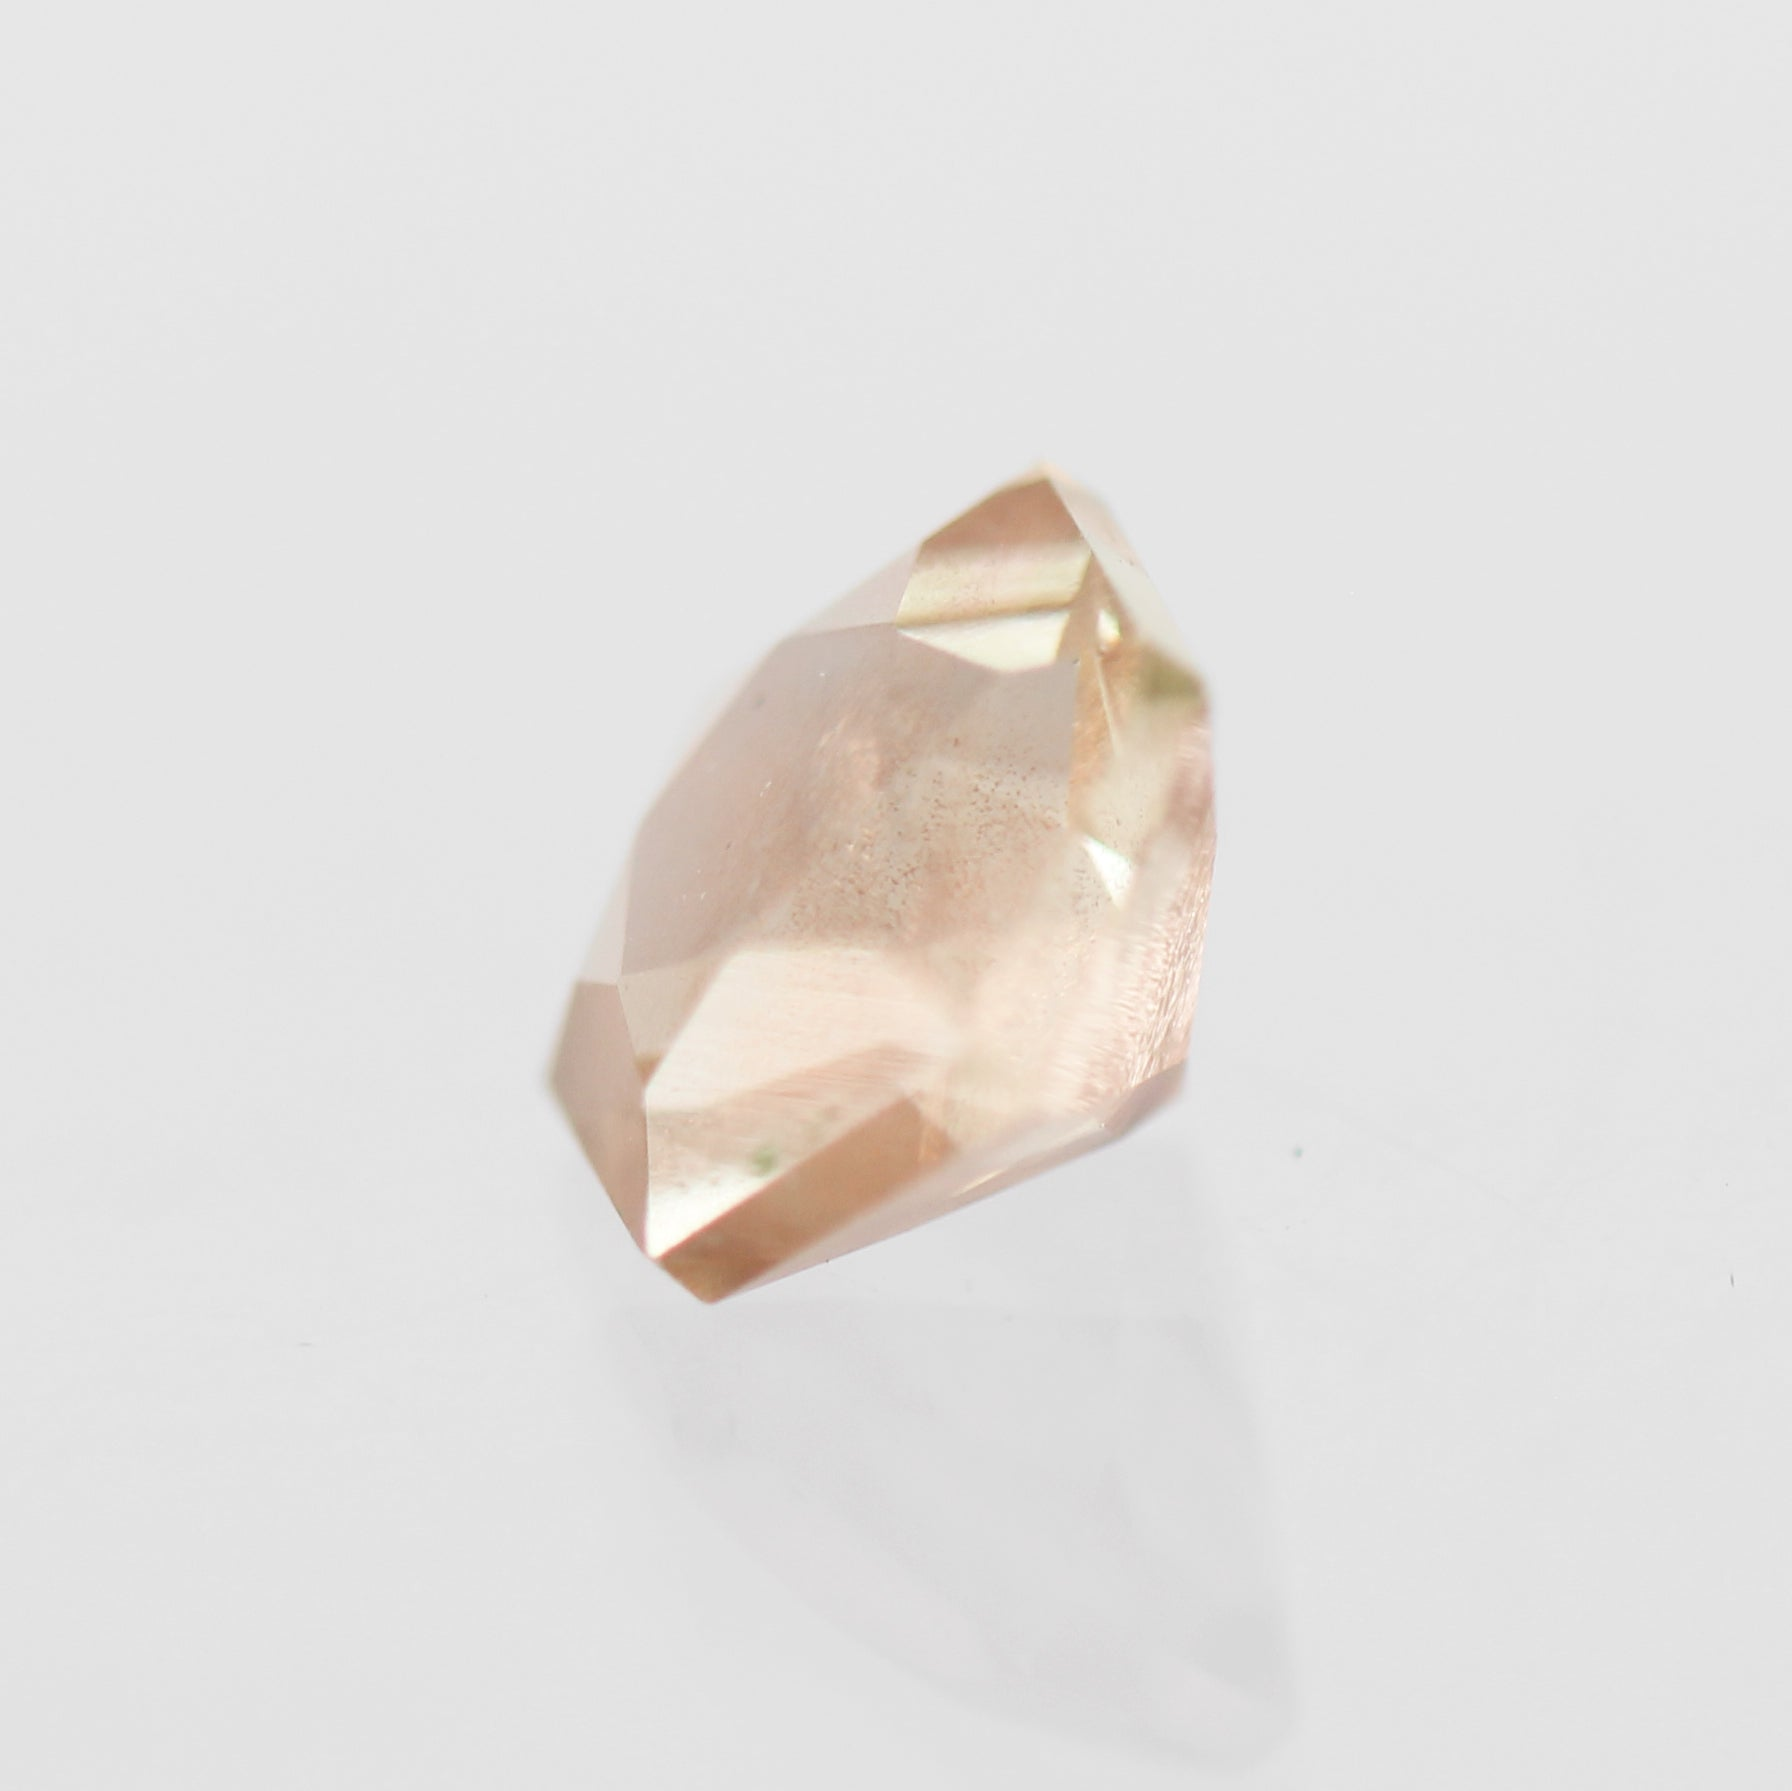 2.03 Carat Hexagon Sunstone- Inventory Code SUNHX203 - Midwinter Co. Alternative Bridal Rings and Modern Fine Jewelry